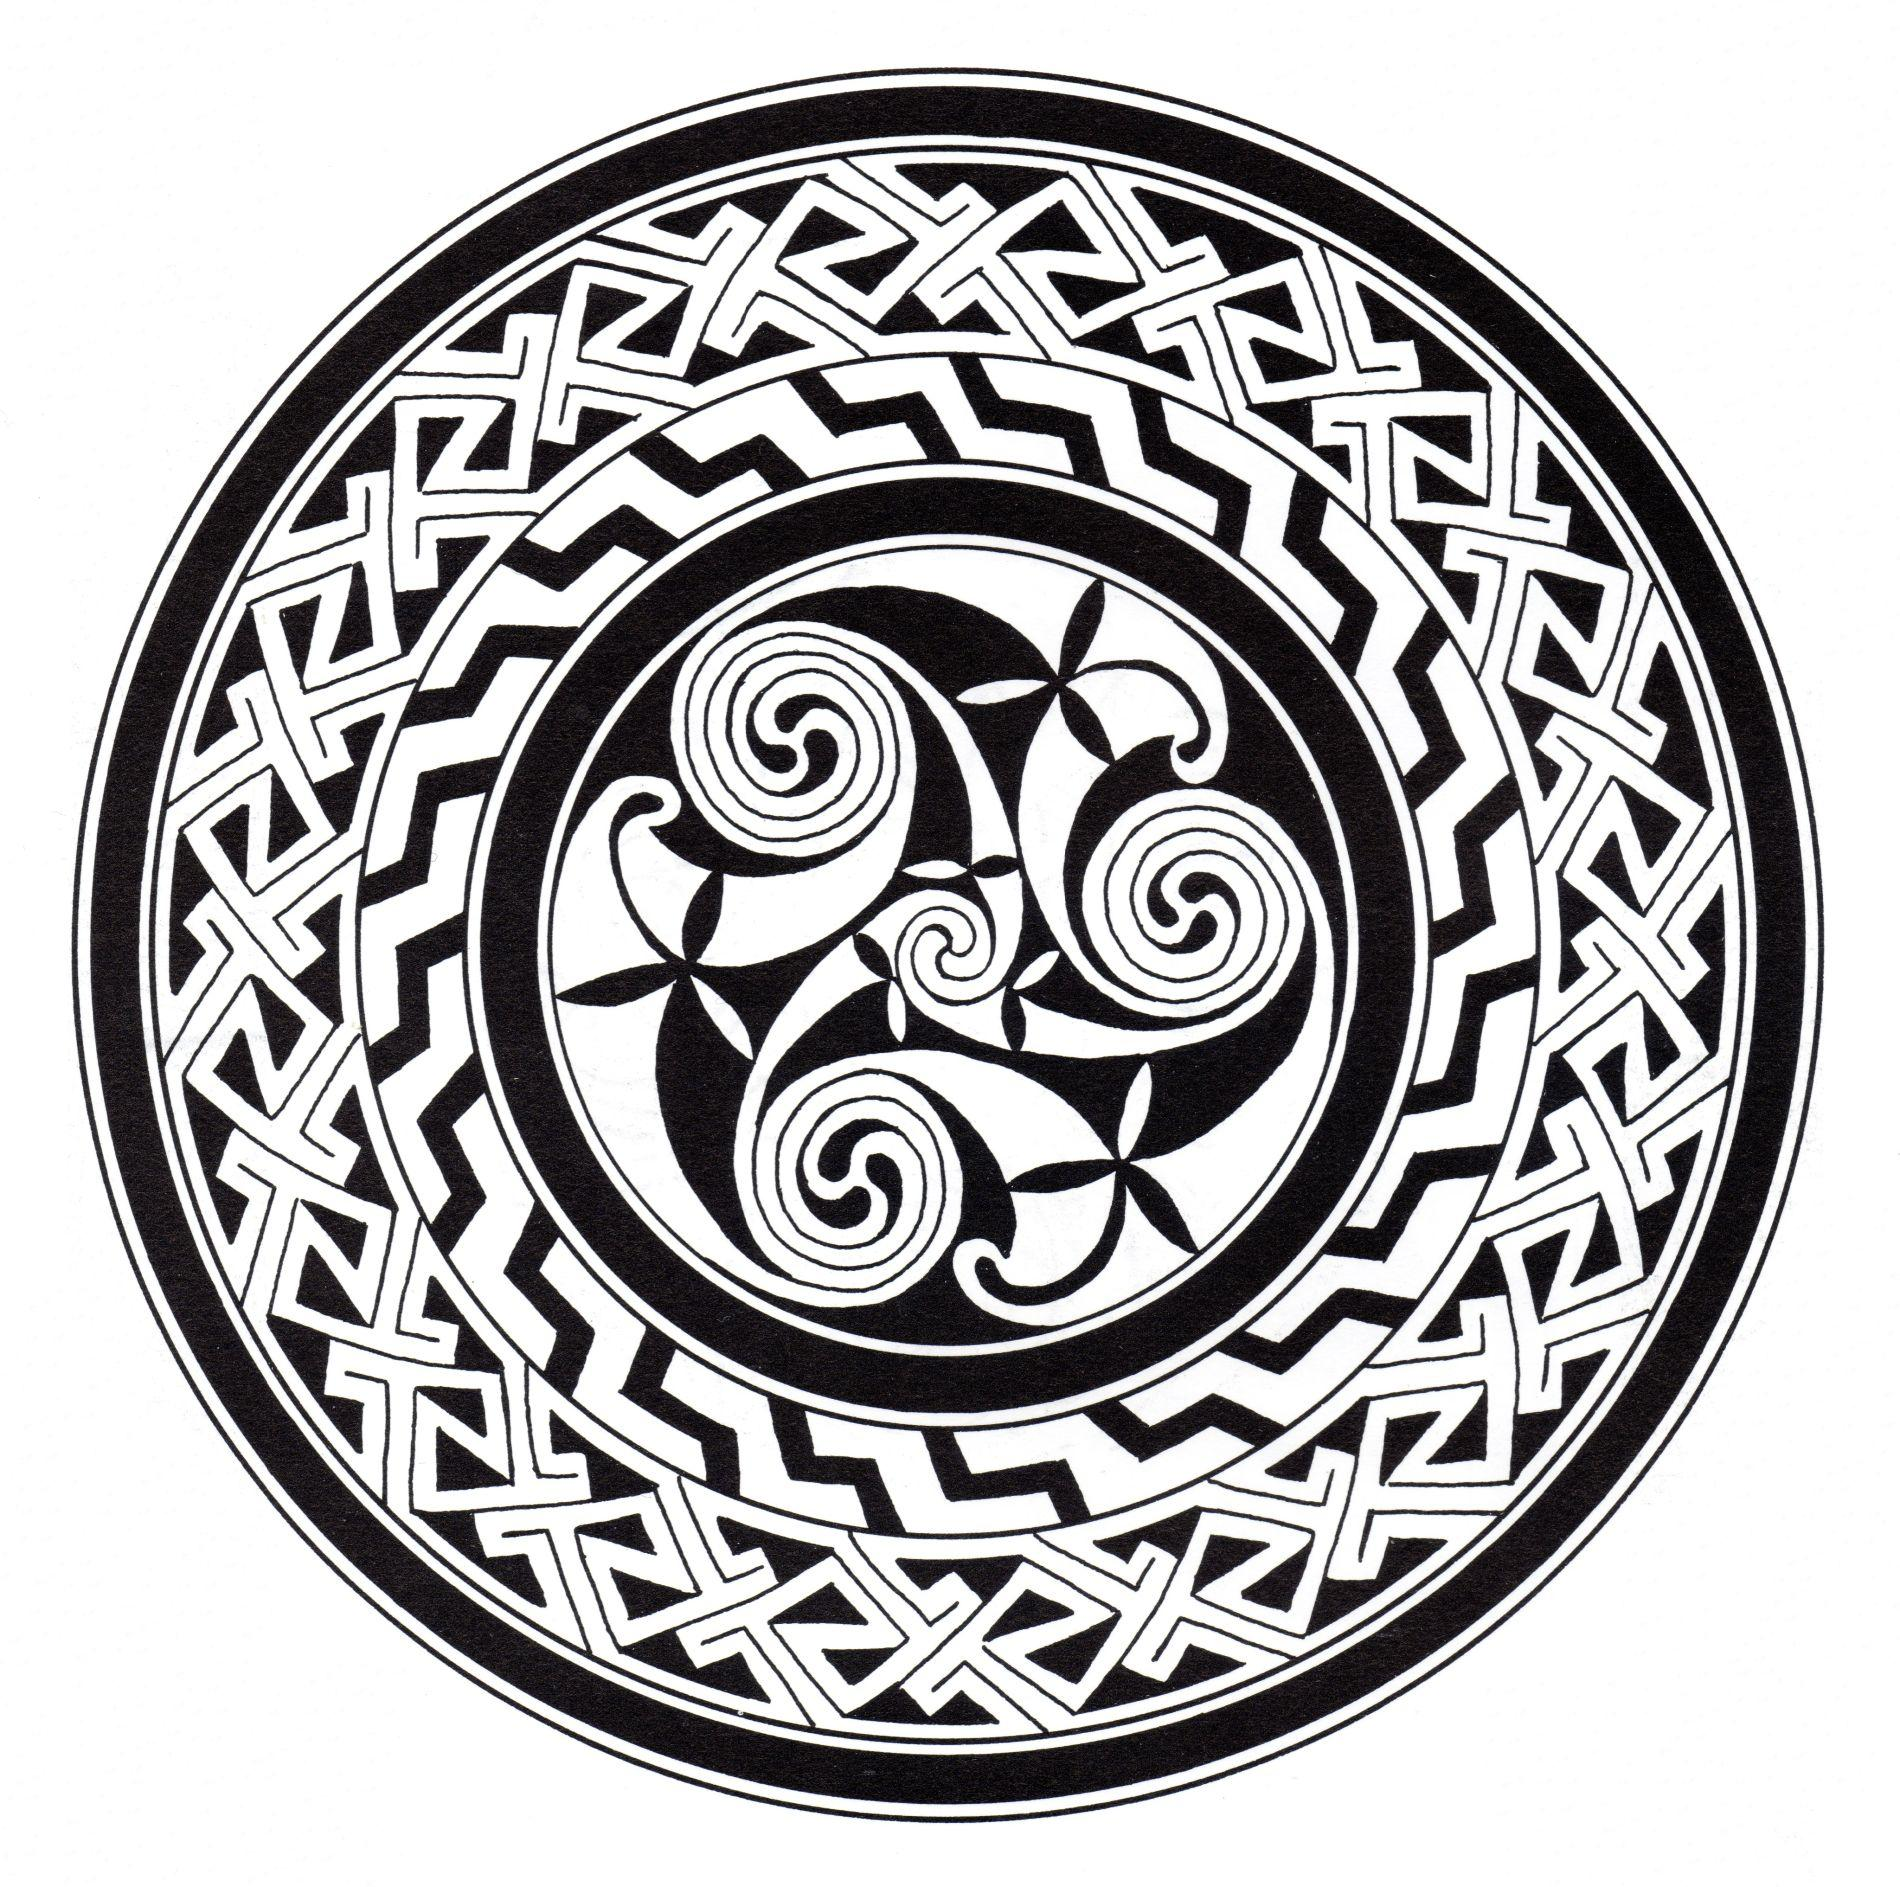 Complex abstract Celtic art design looking like a Mandala